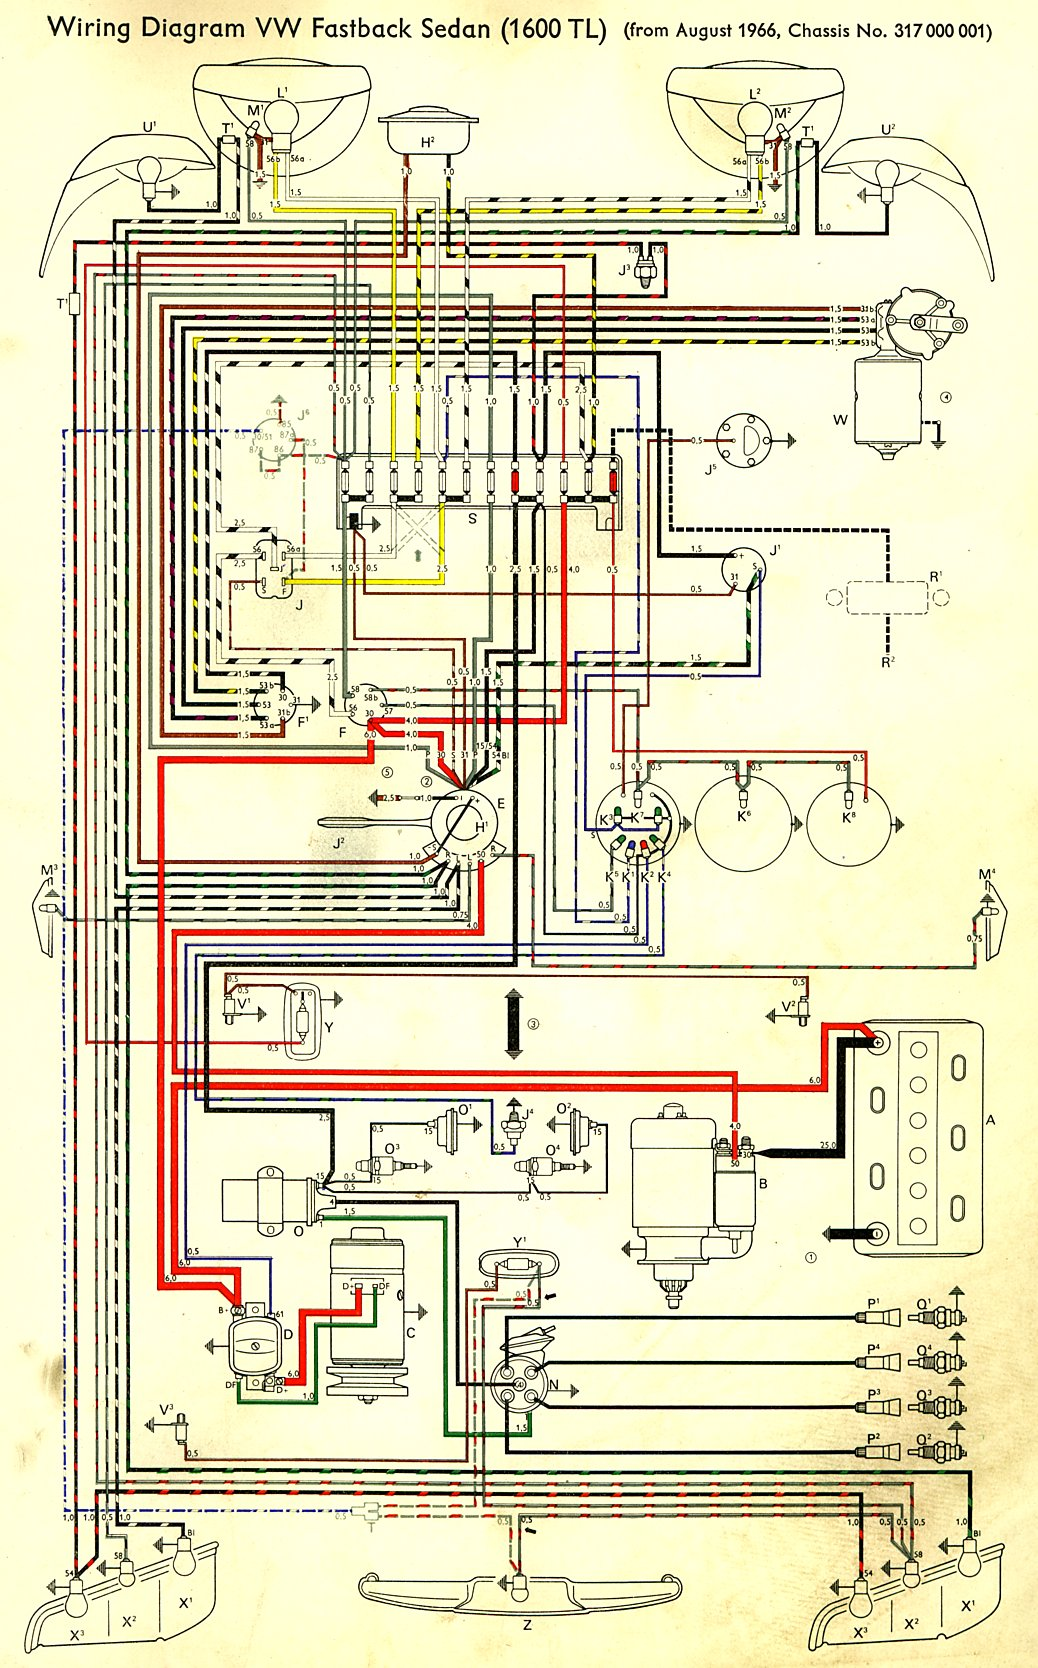 type3_1600TL_67 thesamba com type 3 wiring diagrams vw golf 3 electrical wiring diagram at mifinder.co